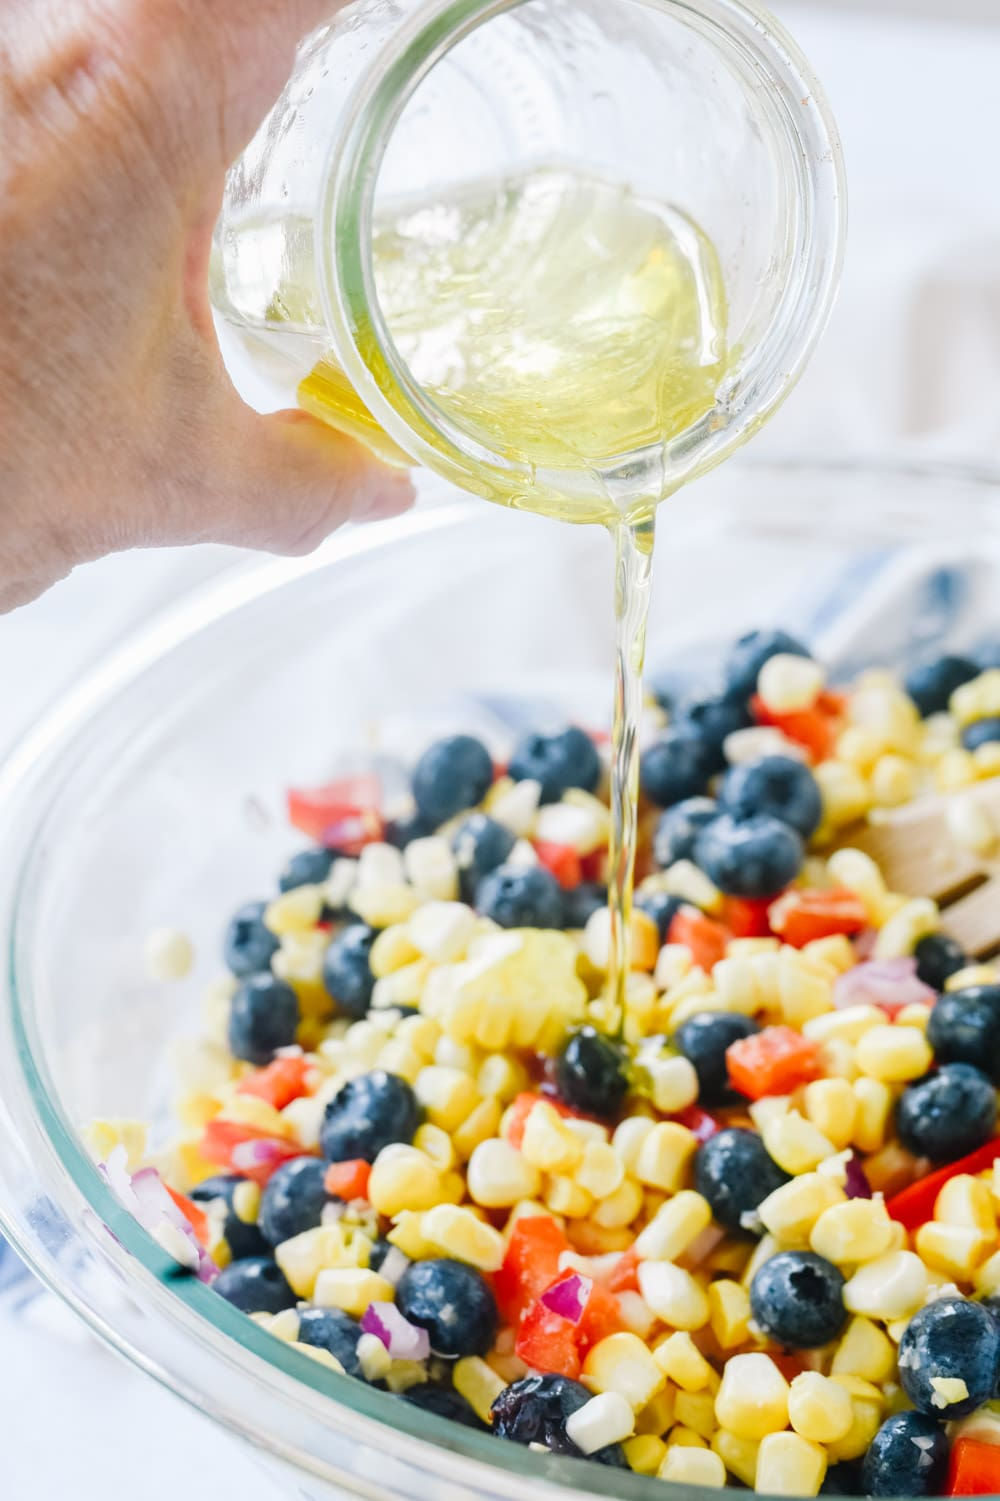 Pouring dressing on Blueberry Corn Salad